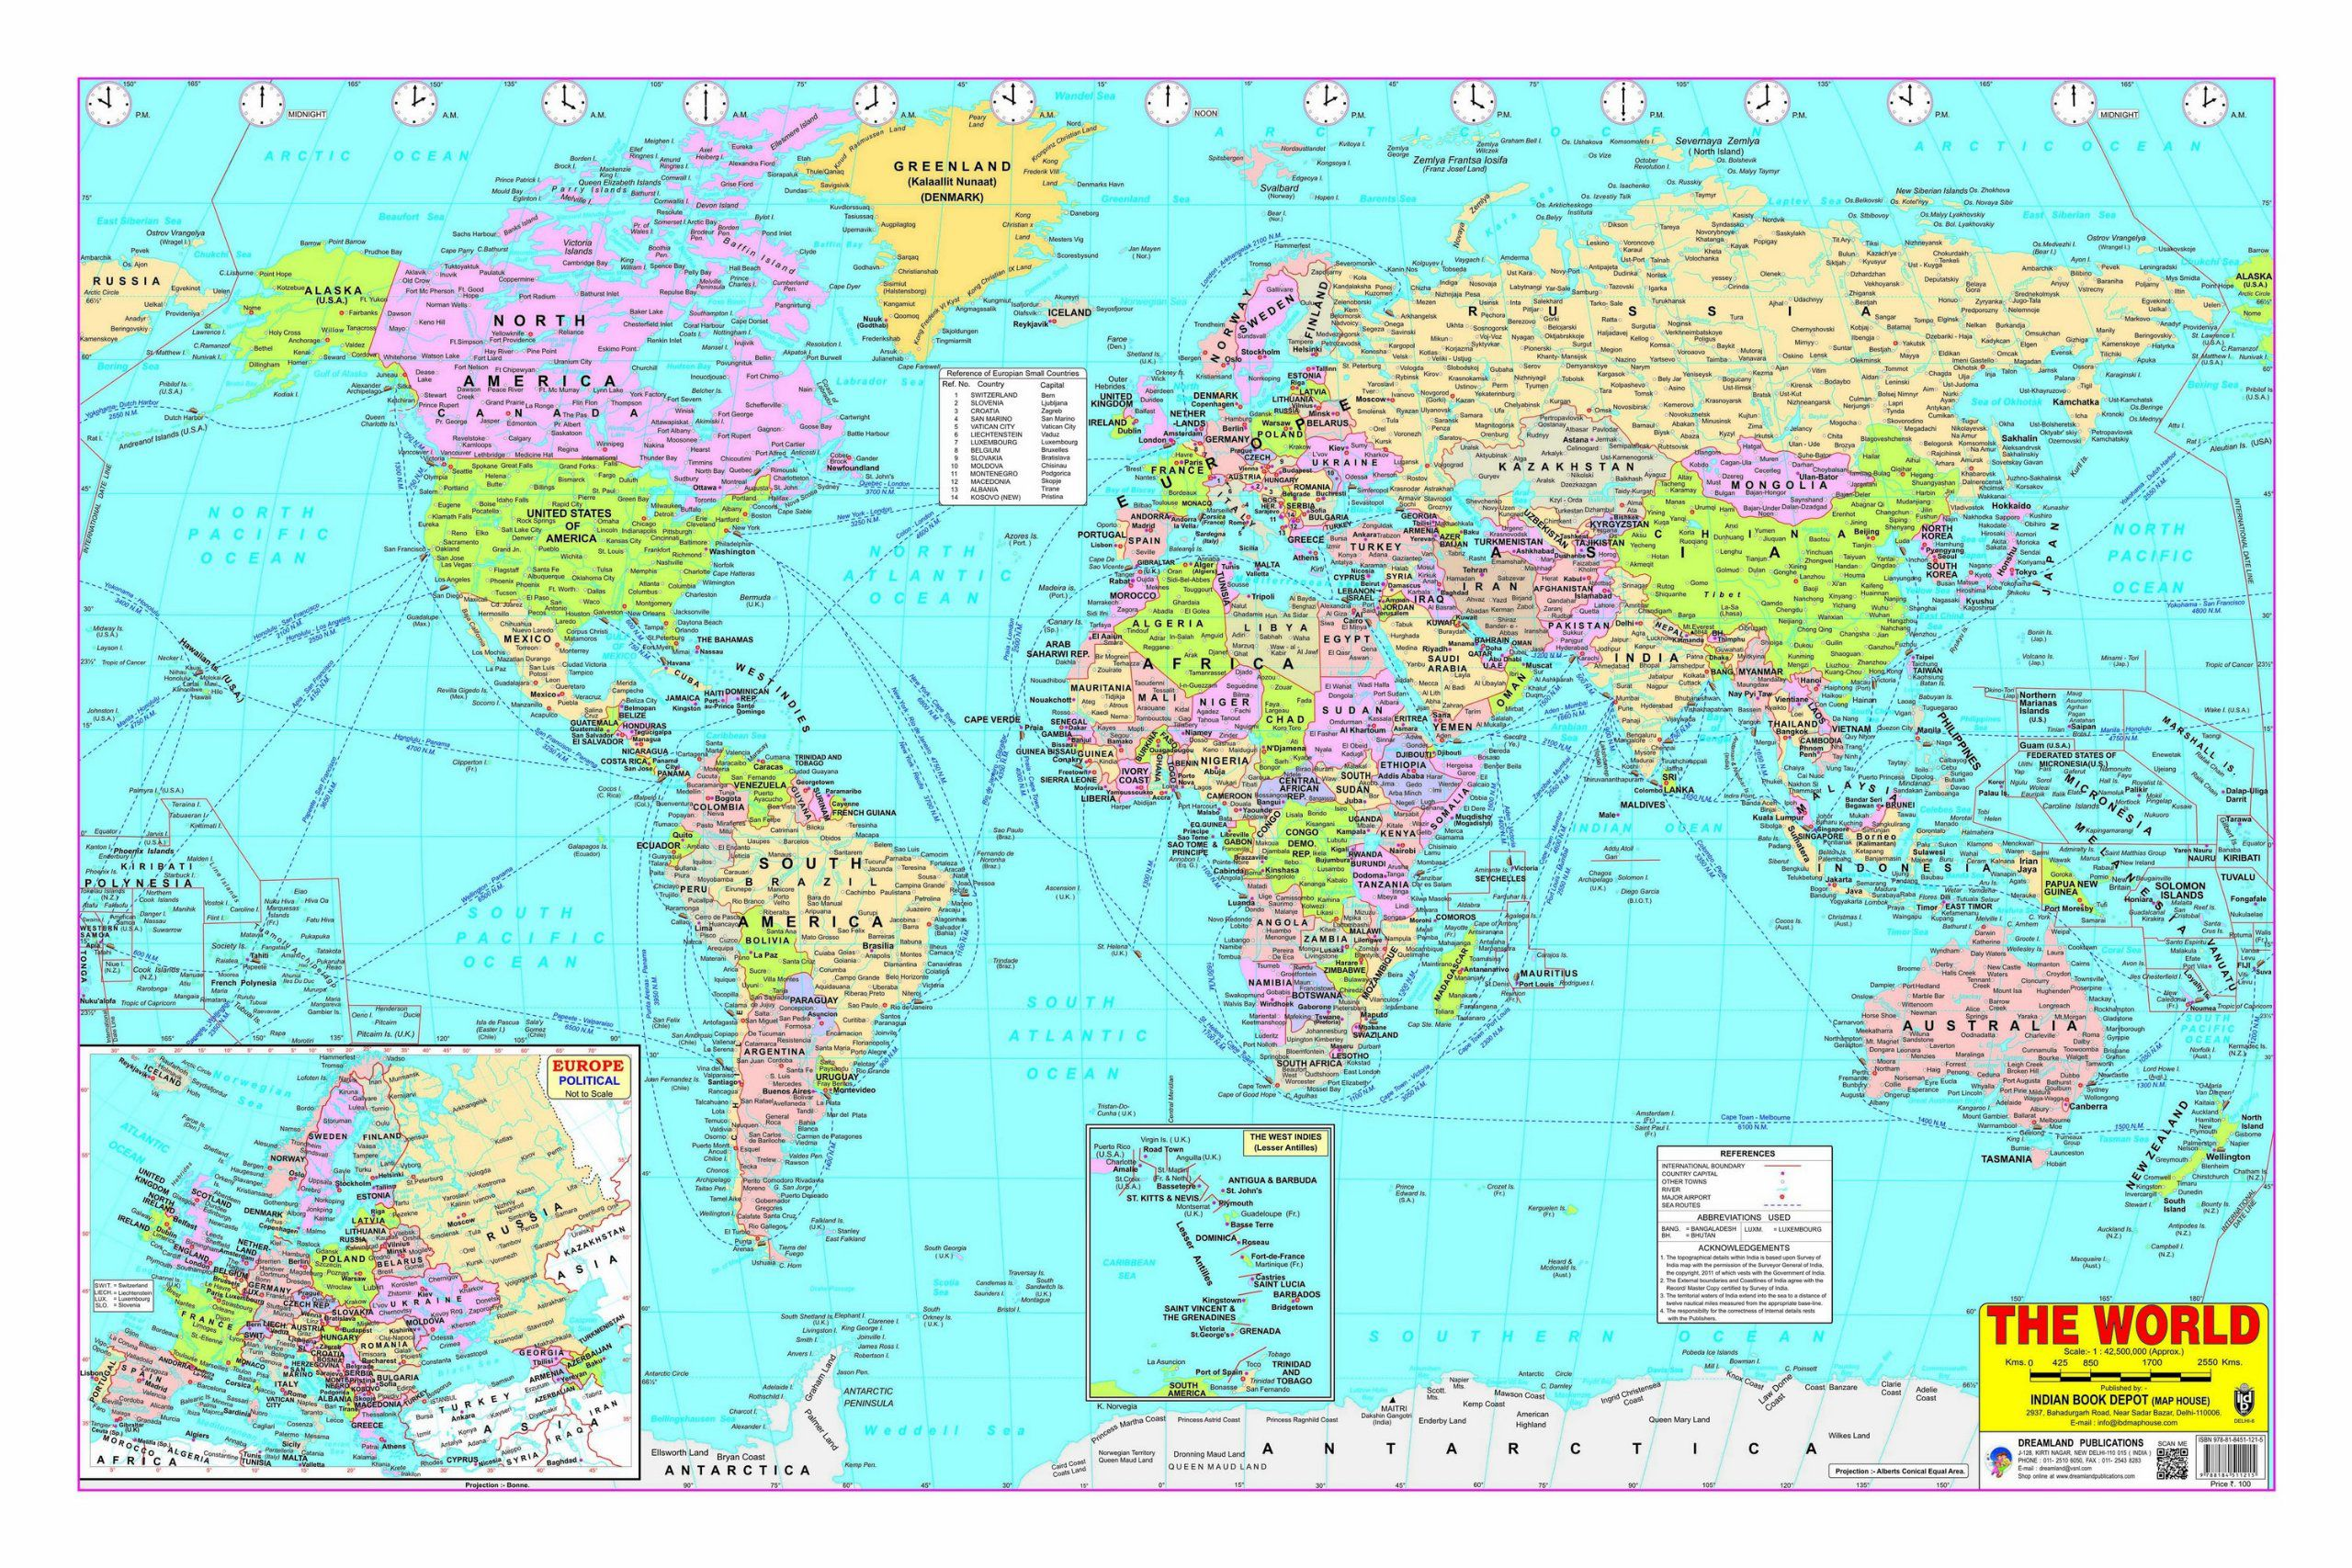 World Map Buy World Map line at Low Price in India on Snapdeal